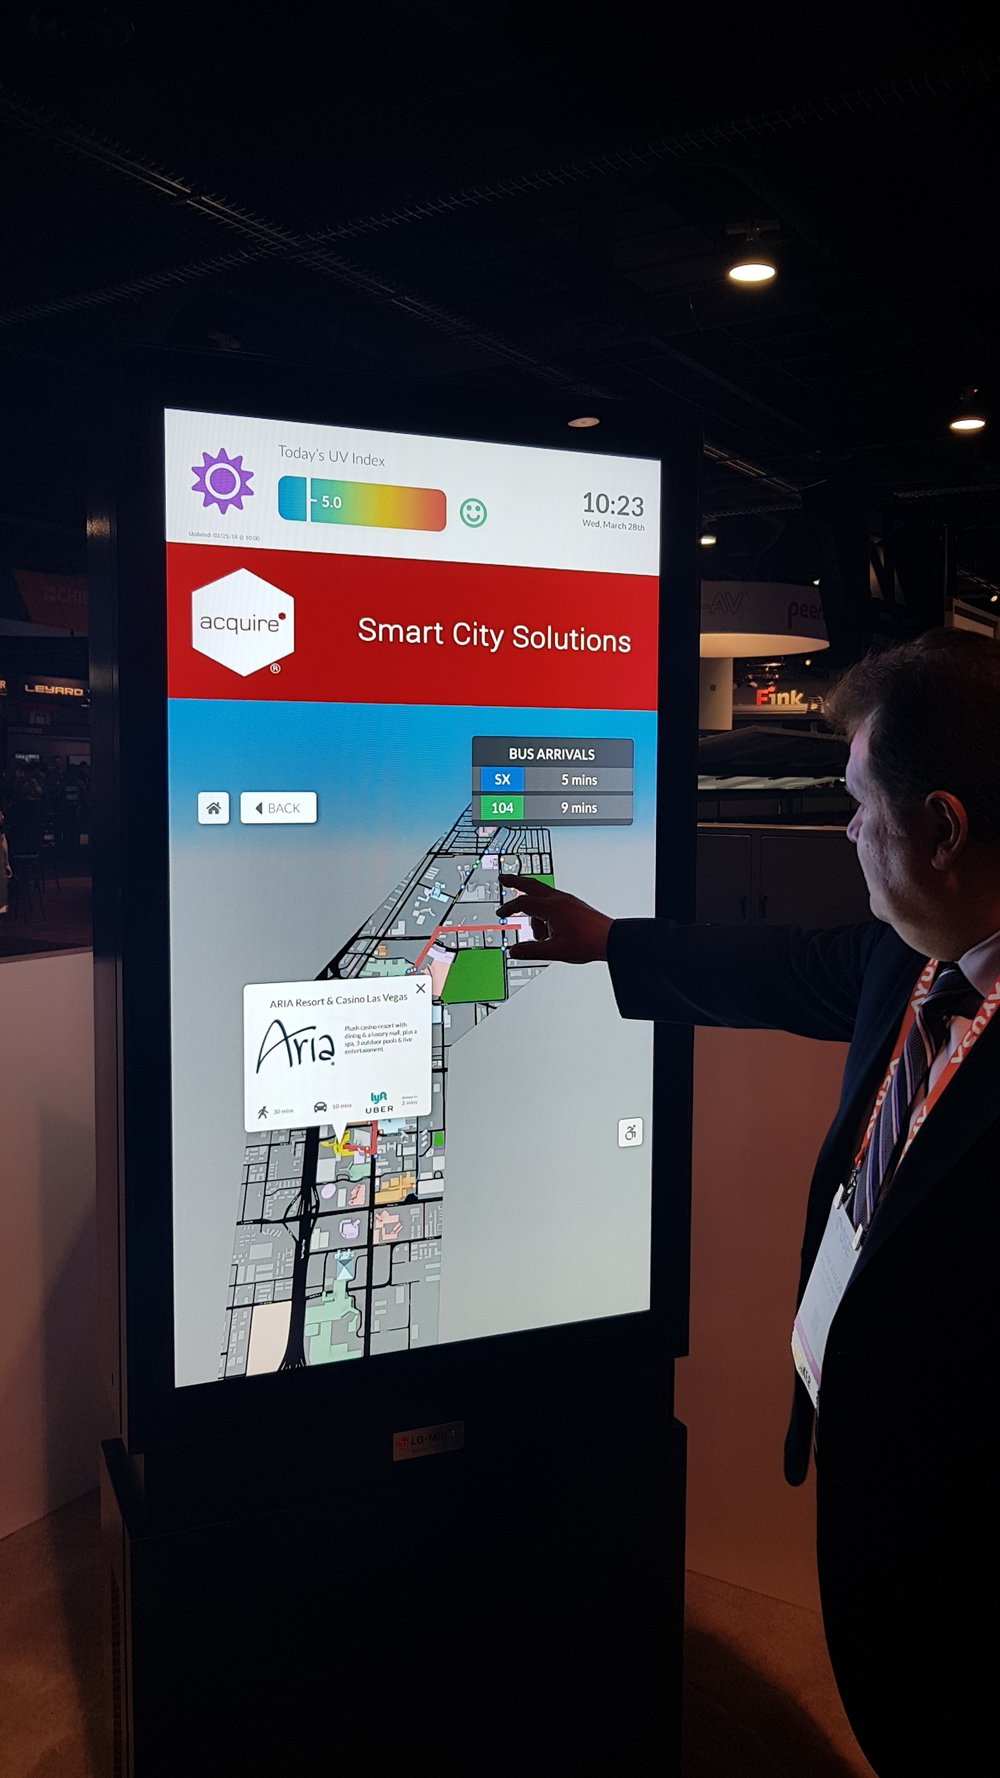 Smart City at LG-MRI Booth